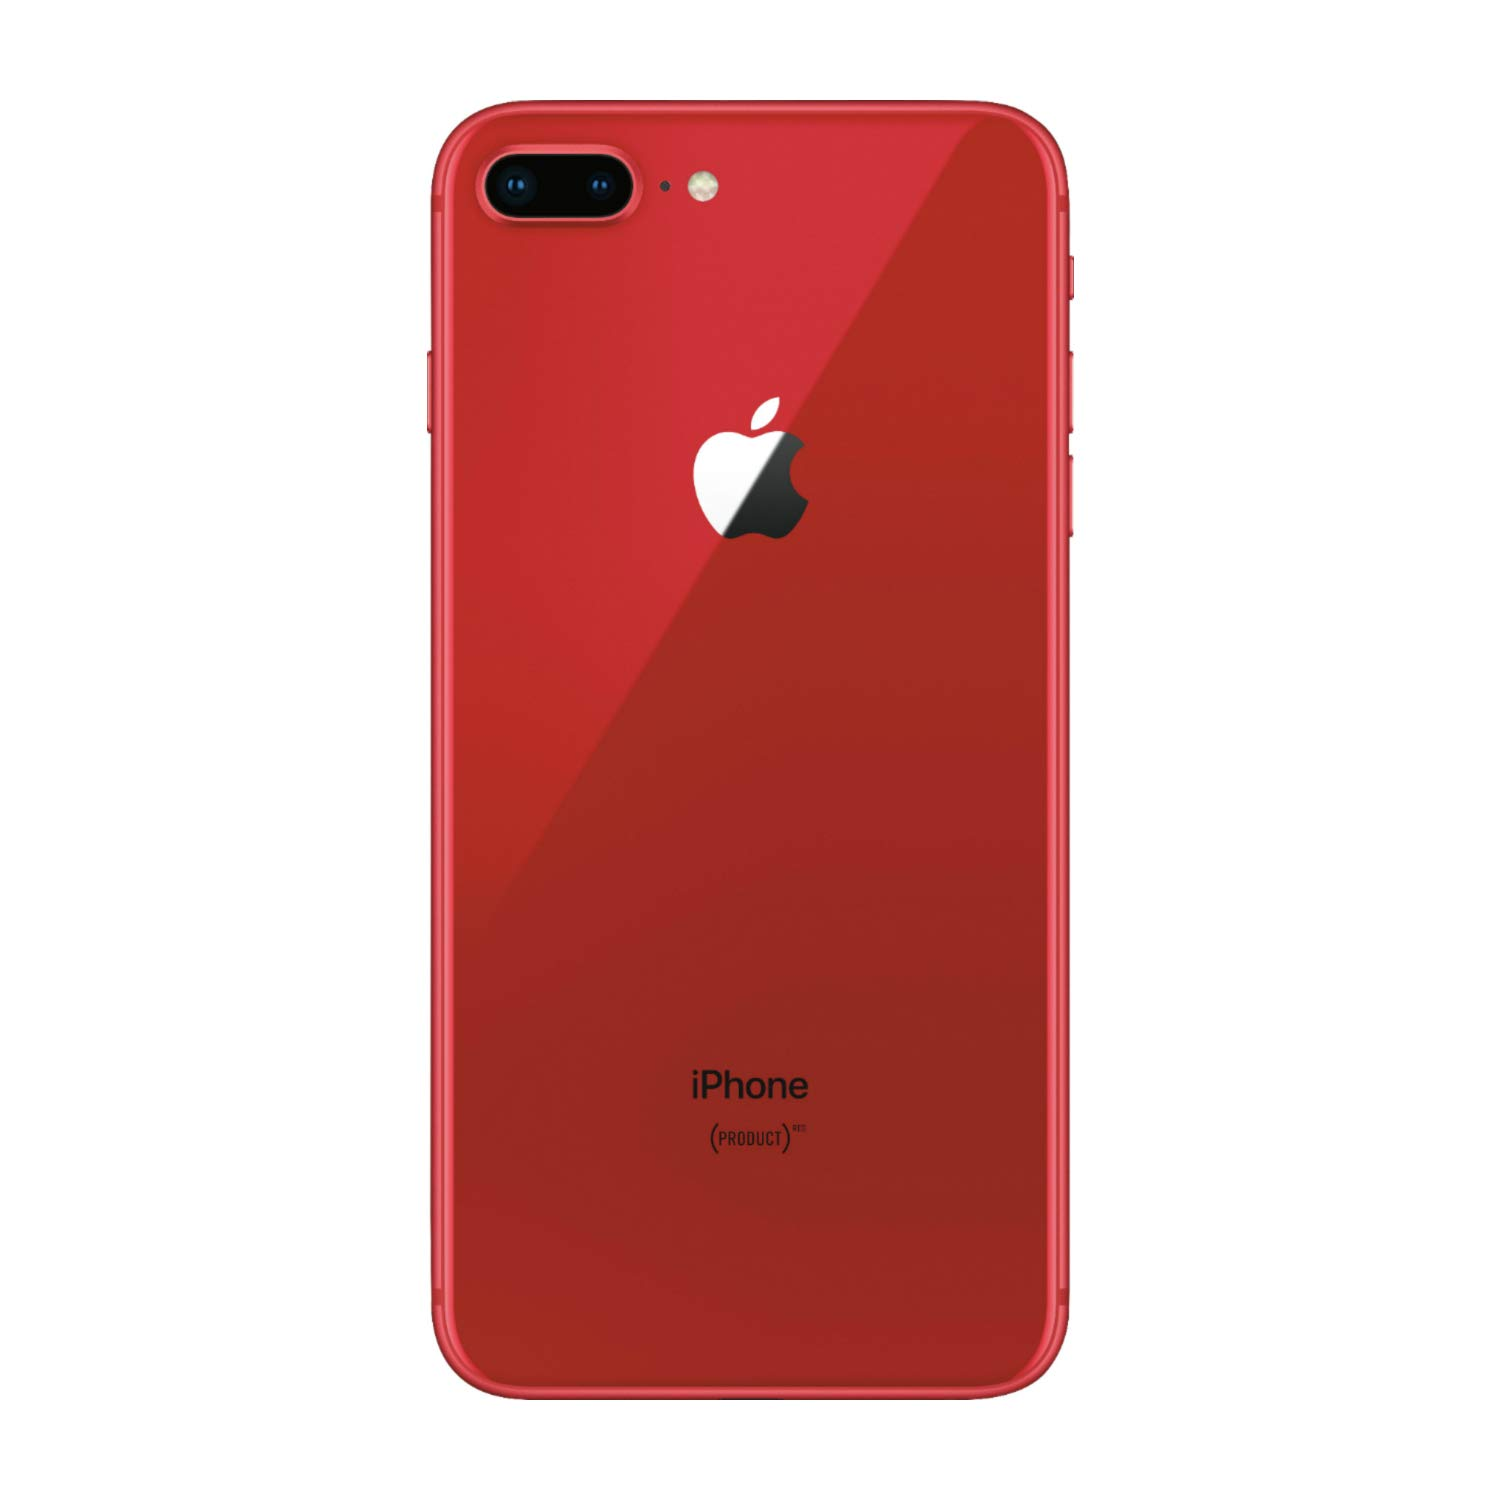 Apple iPhone 8 Plus, 64GB, Red , For AT\u0026T / T,Mobile (Renewed)